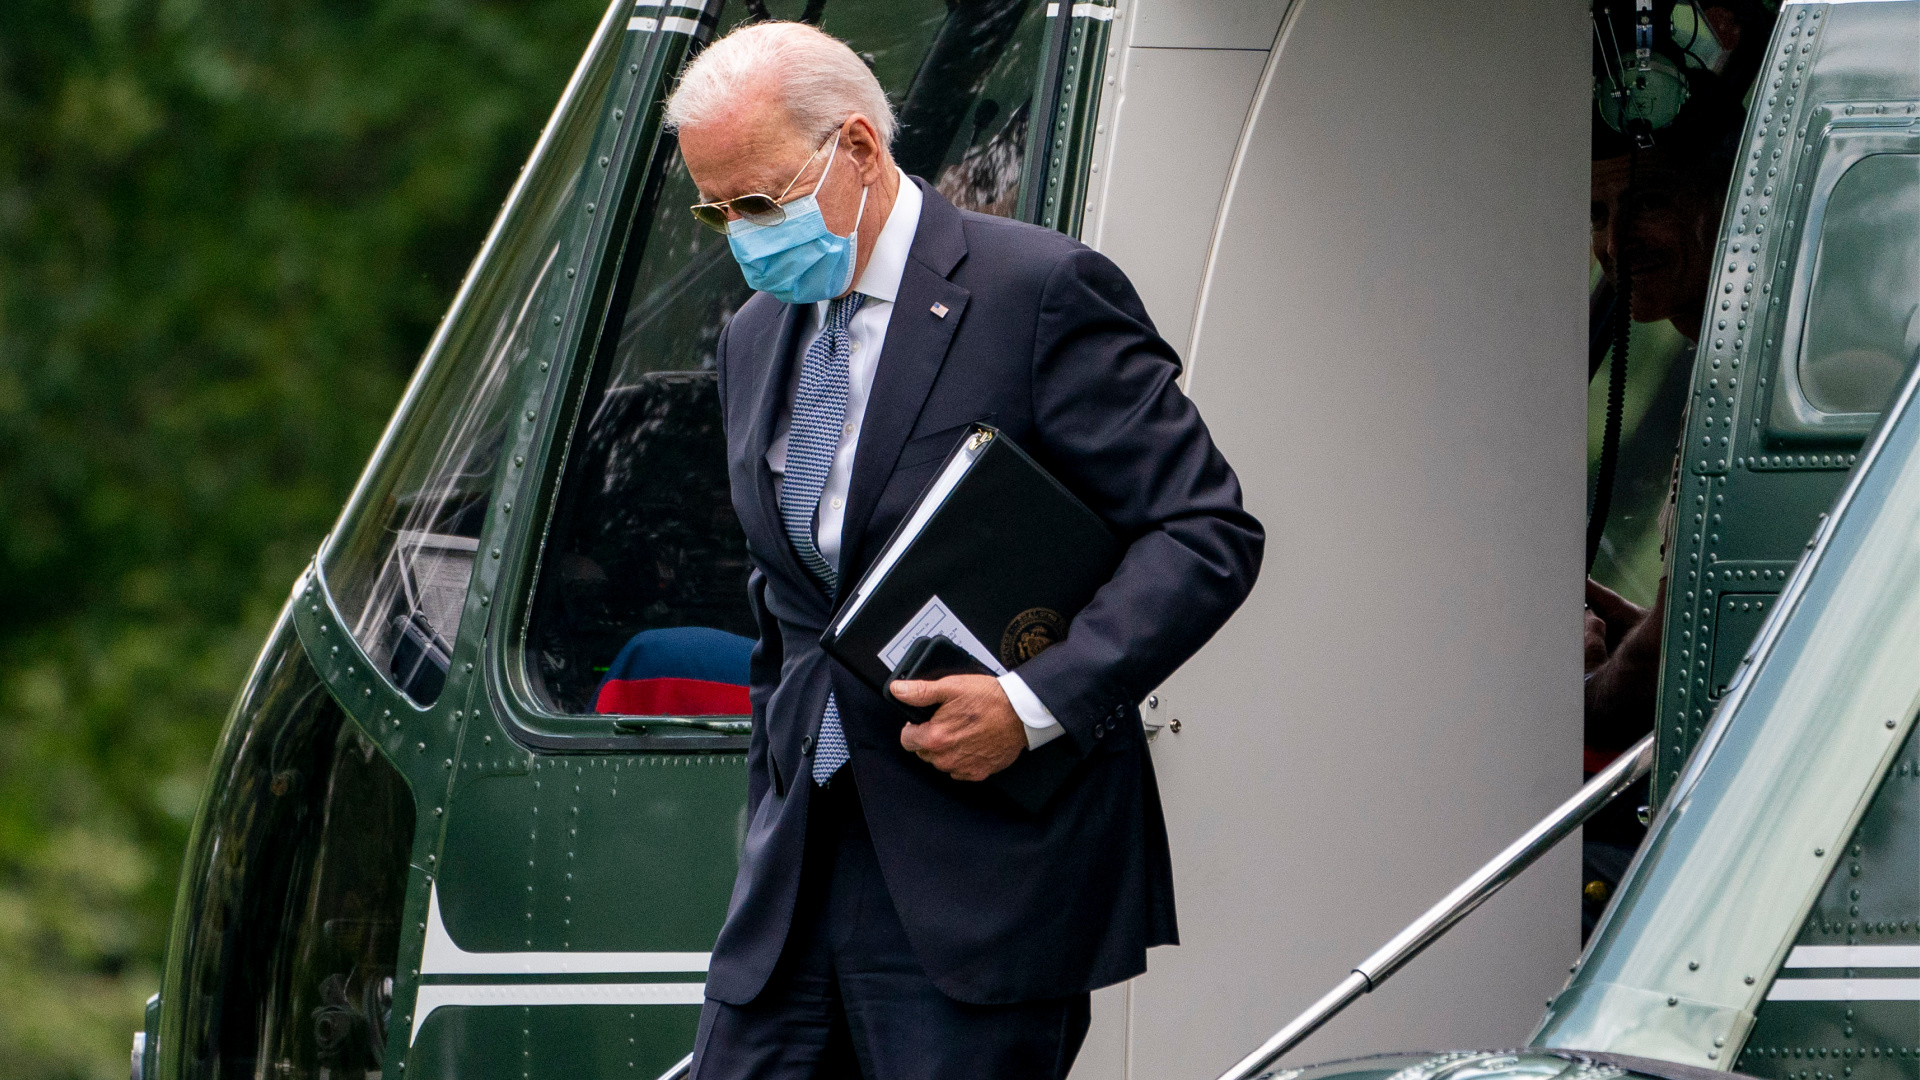 President Joe Biden arrives at the White House in Washington, Monday, Aug. 2, 2021, after spending the weekend at Camp David. (AP Photo/Andrew Harnik)